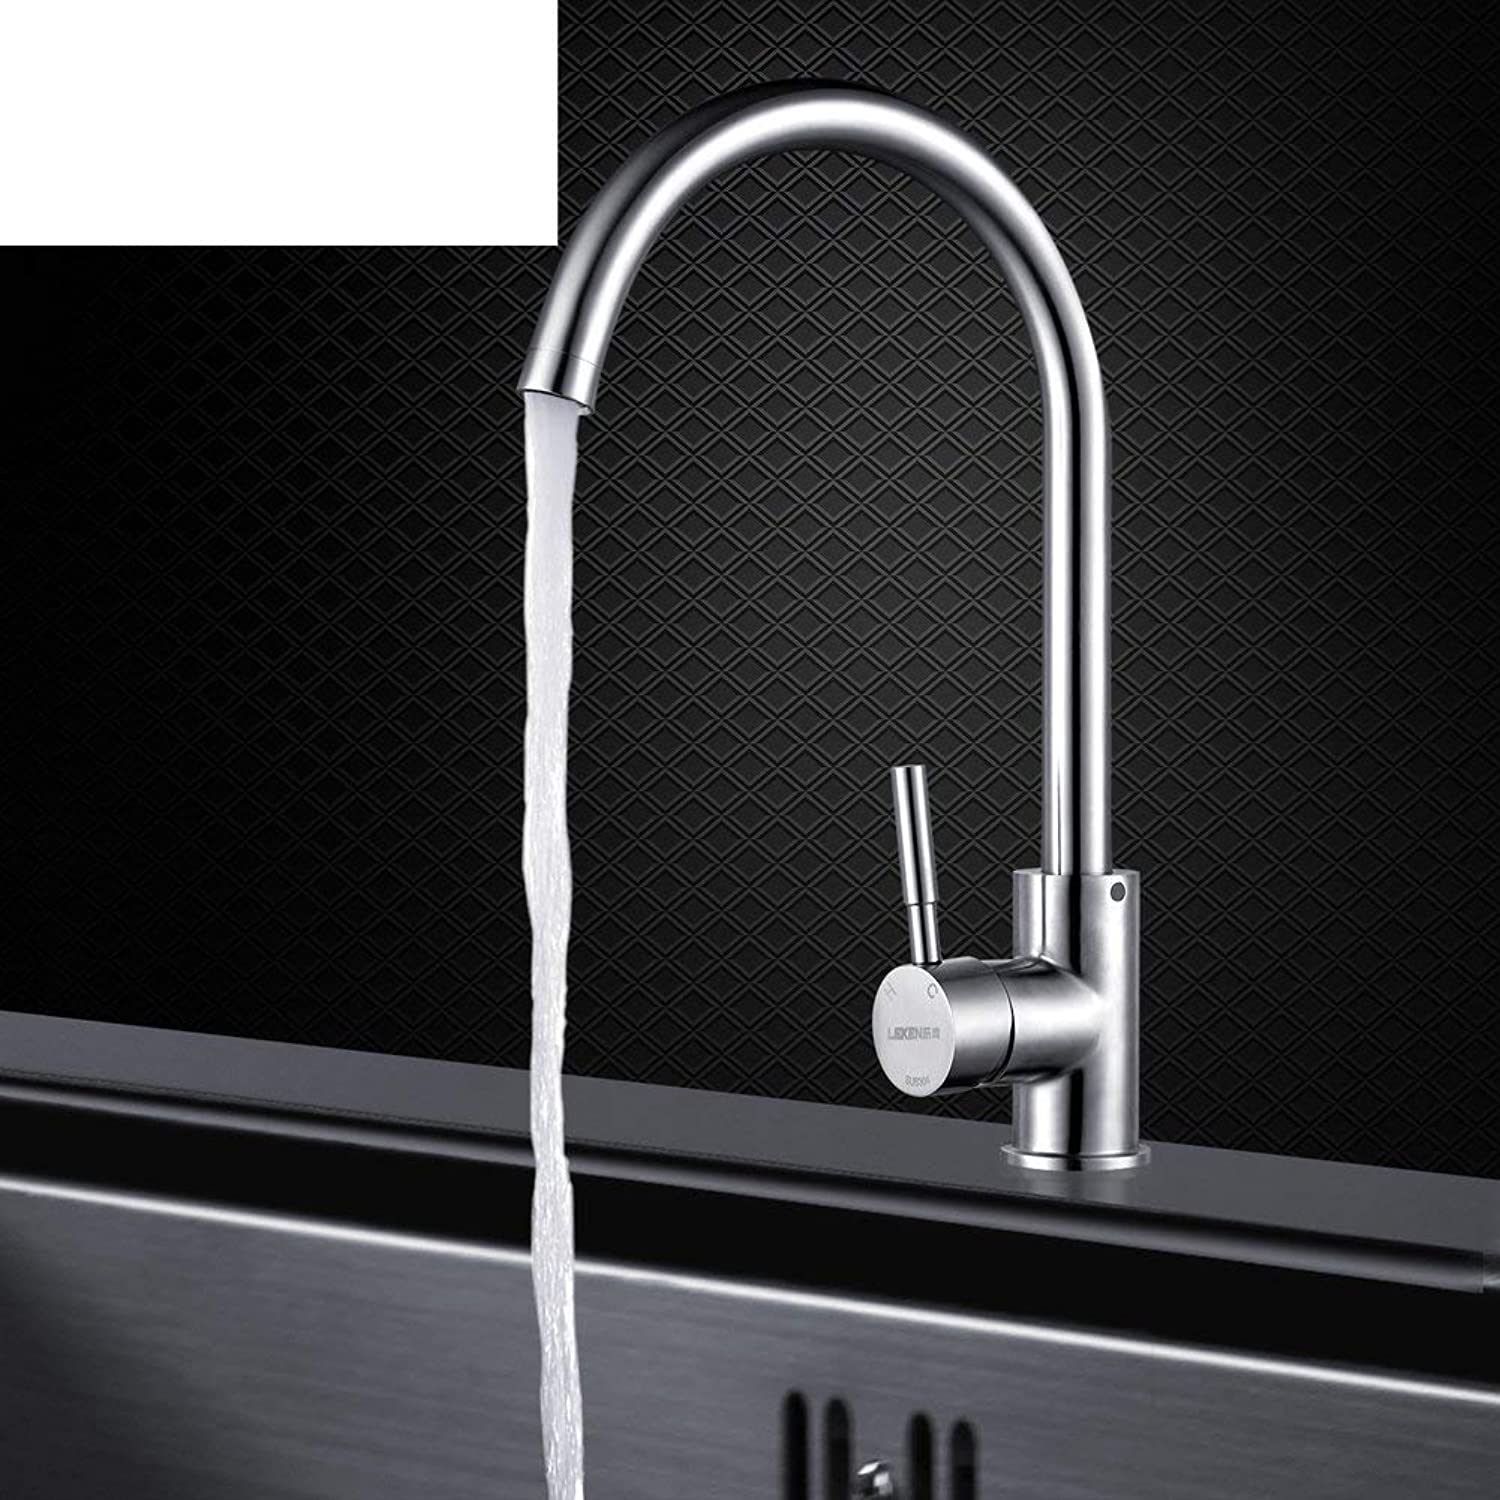 FuweiEncore Kitchen faucet Stainless steel kitchen faucet Tap both hot and cold Vegetables basin faucet (color   -, Size   -)